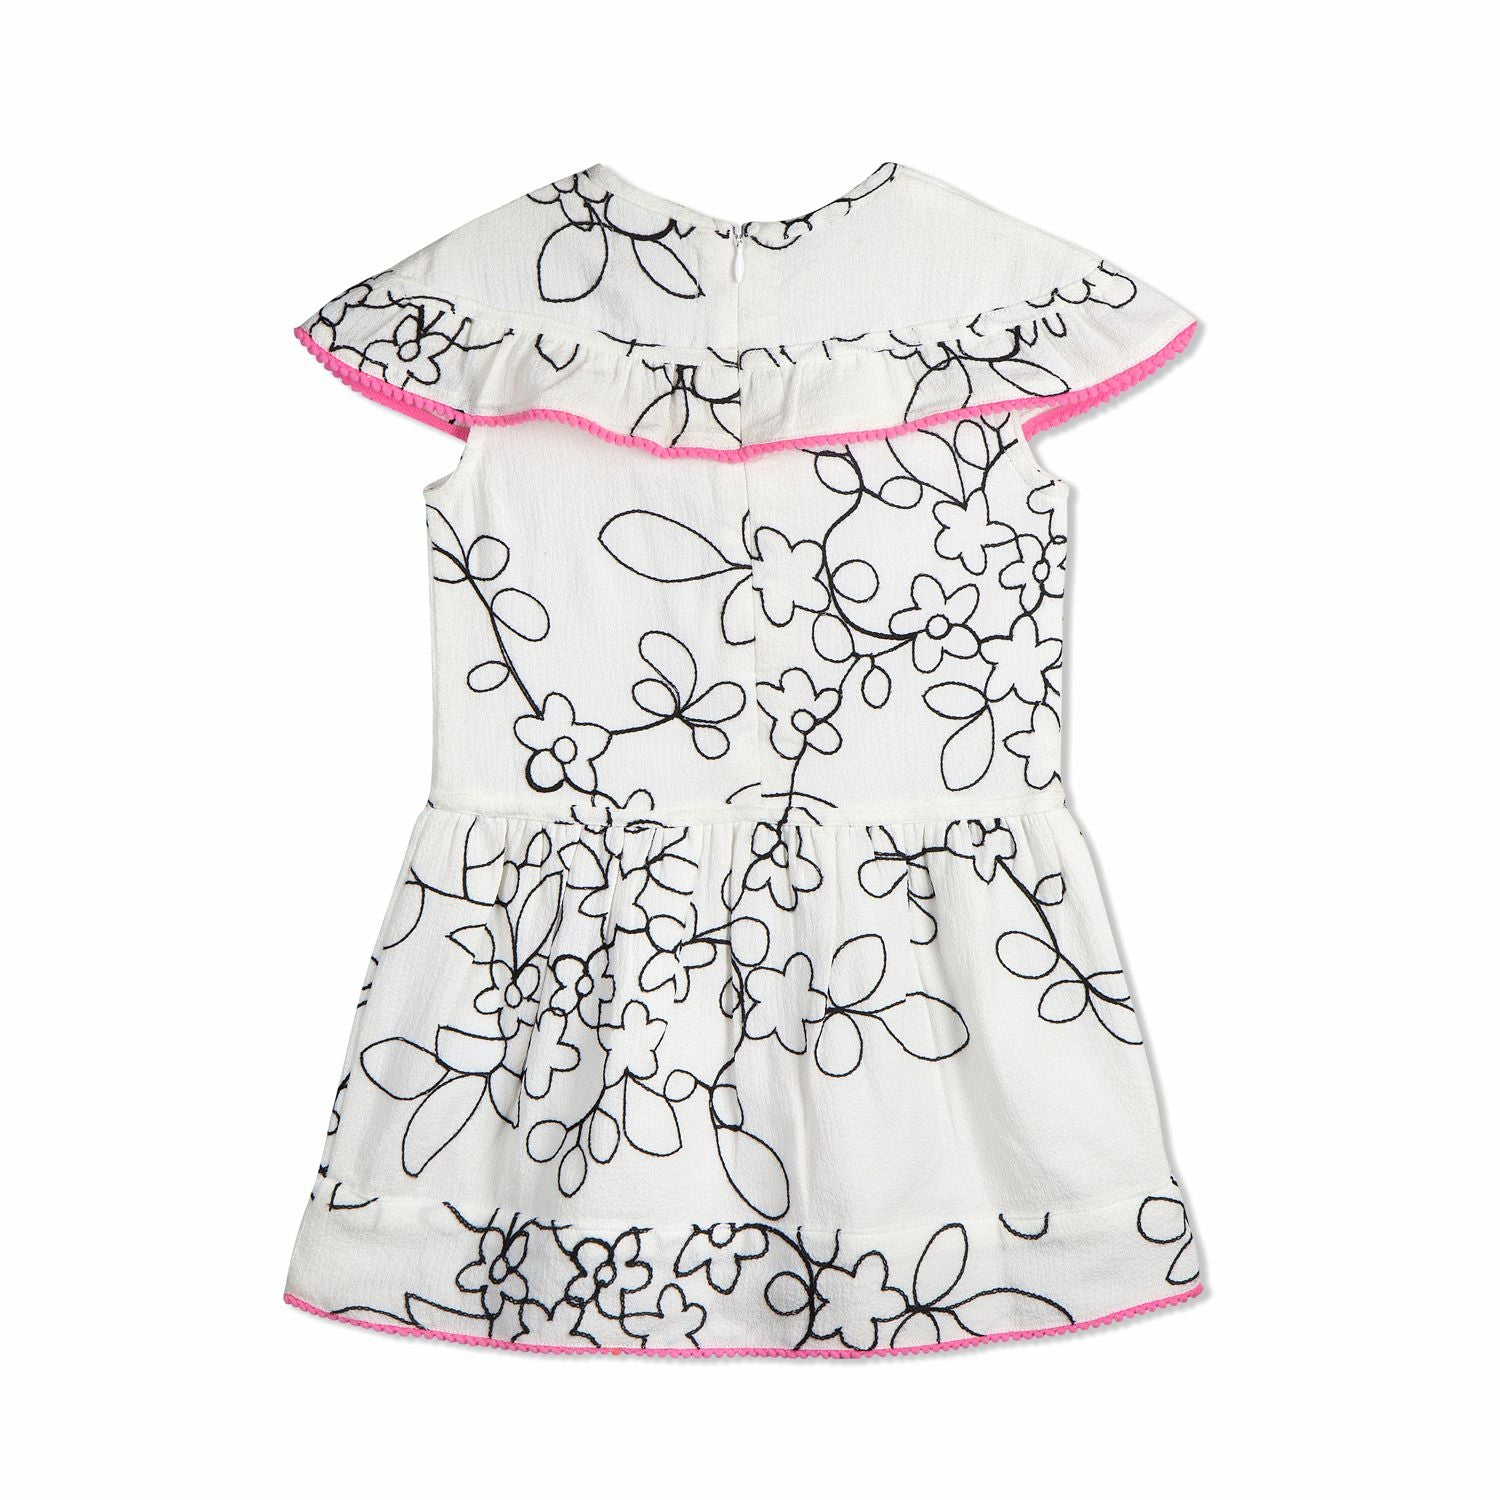 All over Embroidered Dress for Girls